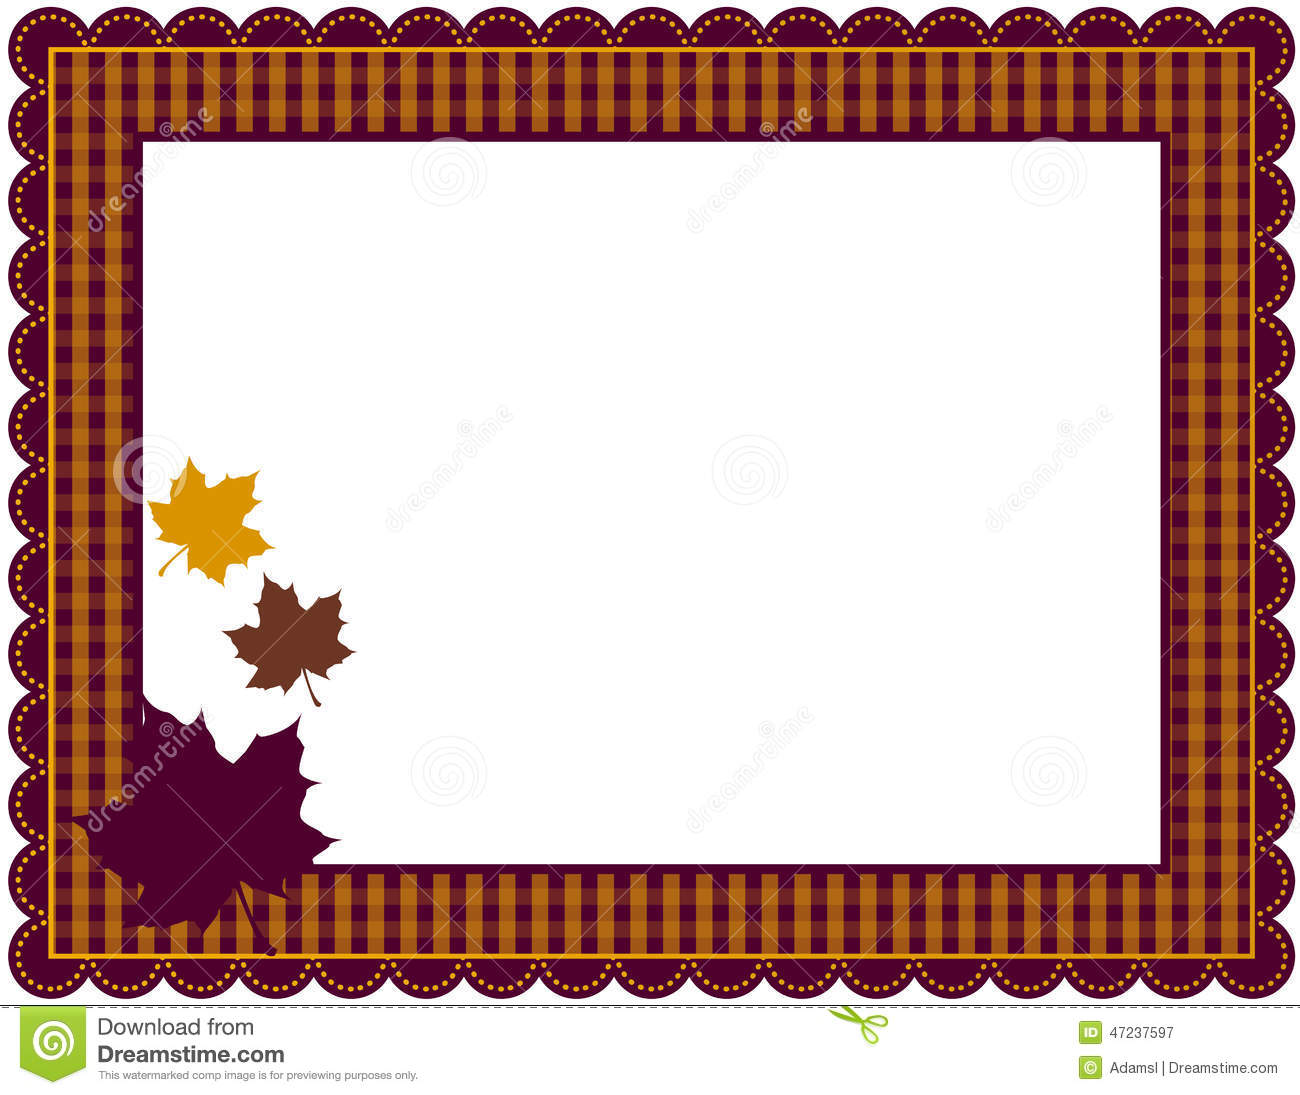 Gingham patterned frame with scalloped border designed in Fall theme ...